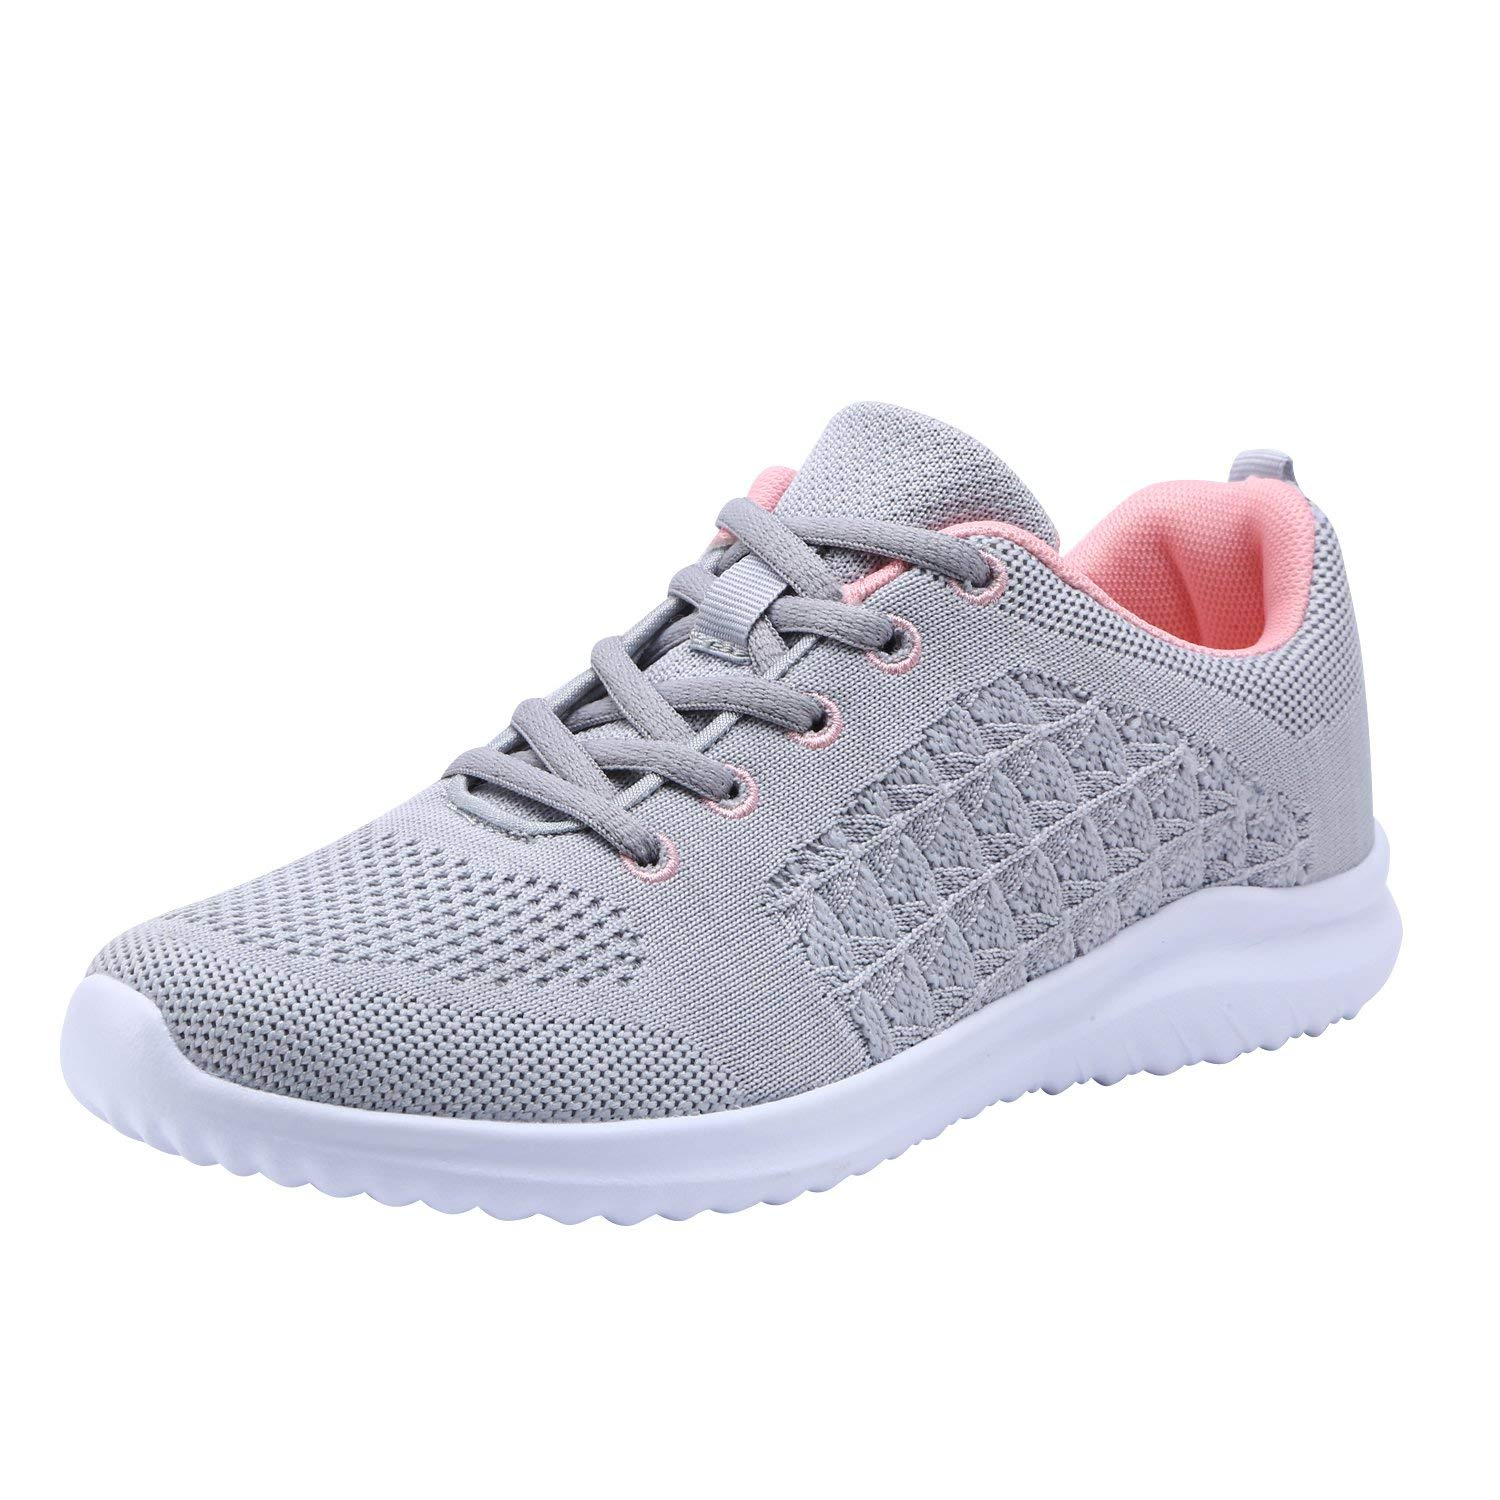 74f52ab9d4557 Galleon - YILAN Girl s   Women s Fashion Sneakers Casual Sport Shoes (10  B(M) US